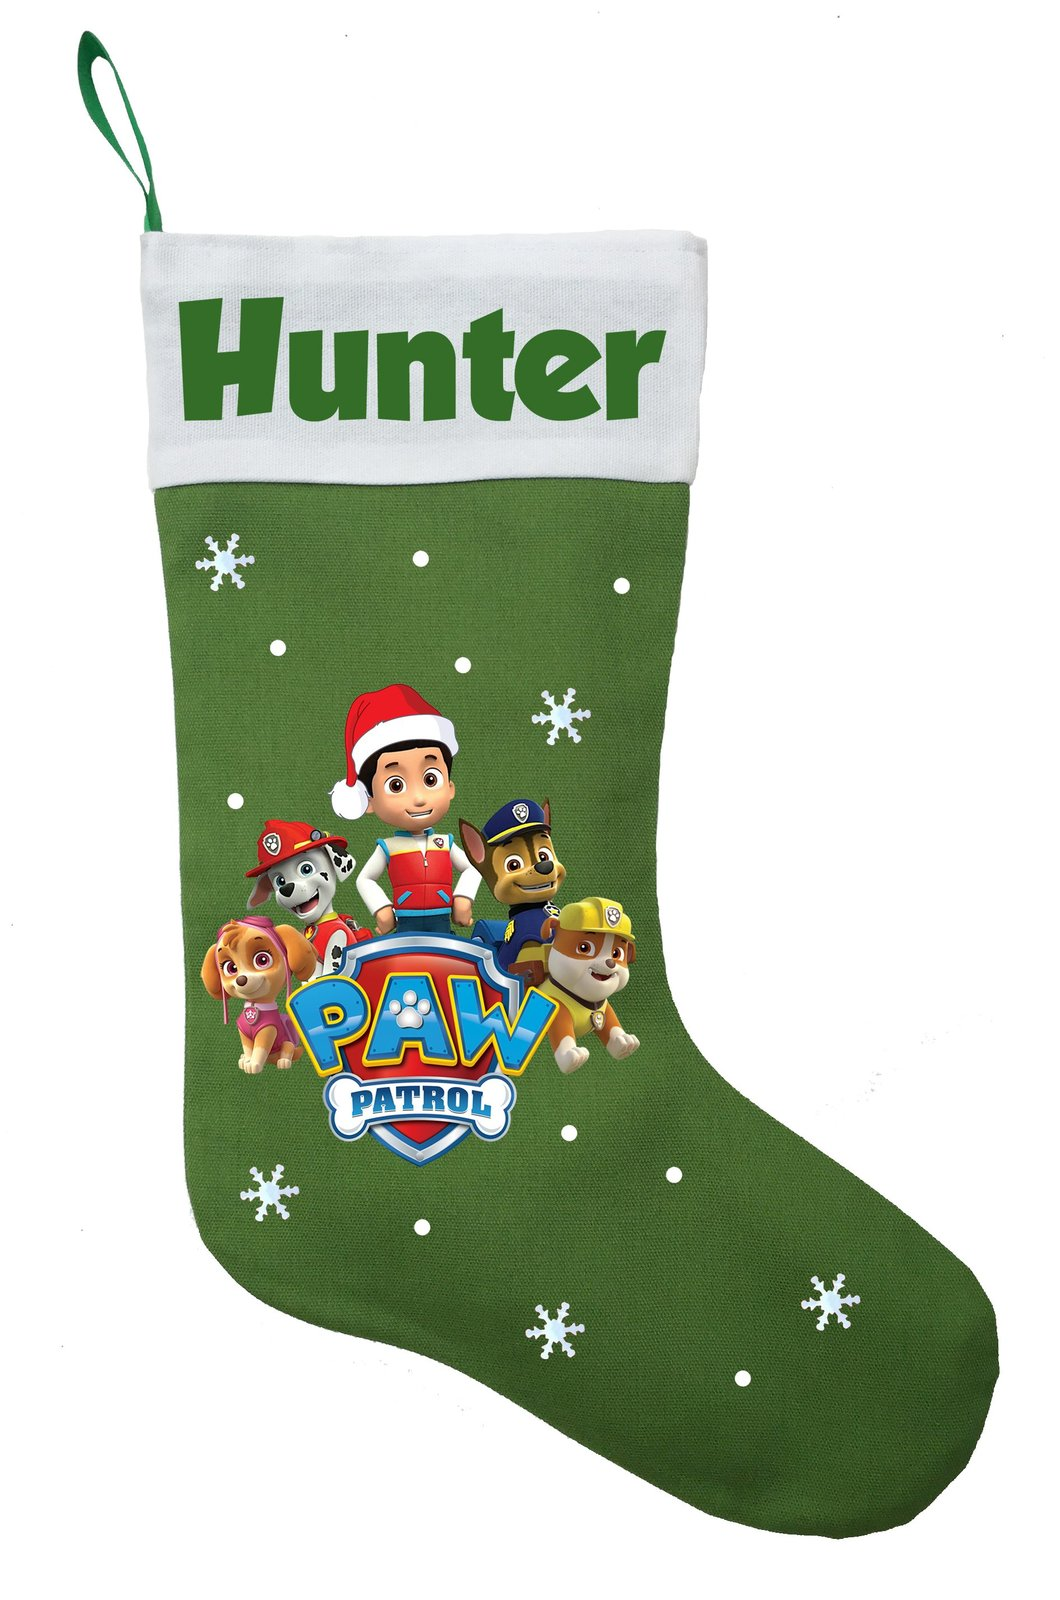 Paw Patrol Christmas Stocking - Personalized and Hand Made Paw Patrol Stocking